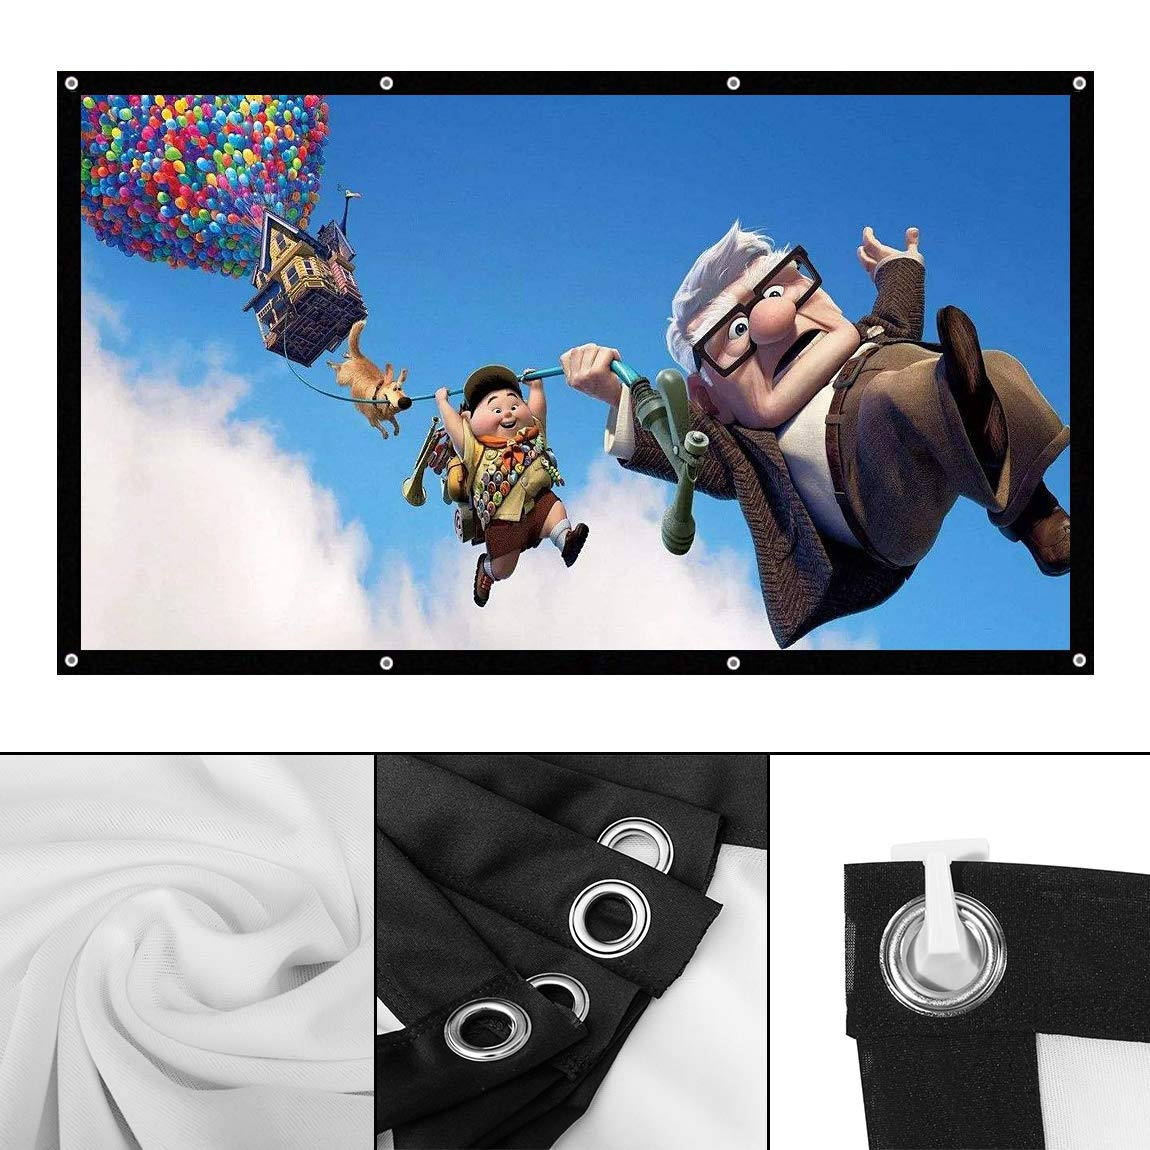 Projector Screen, 120 inch Portable Projection Screen 16:9 HD Foldable Anti-Crease Projector Movie Screen for Home Theater Indoor Outdoor, Rear & Front Projection Screen